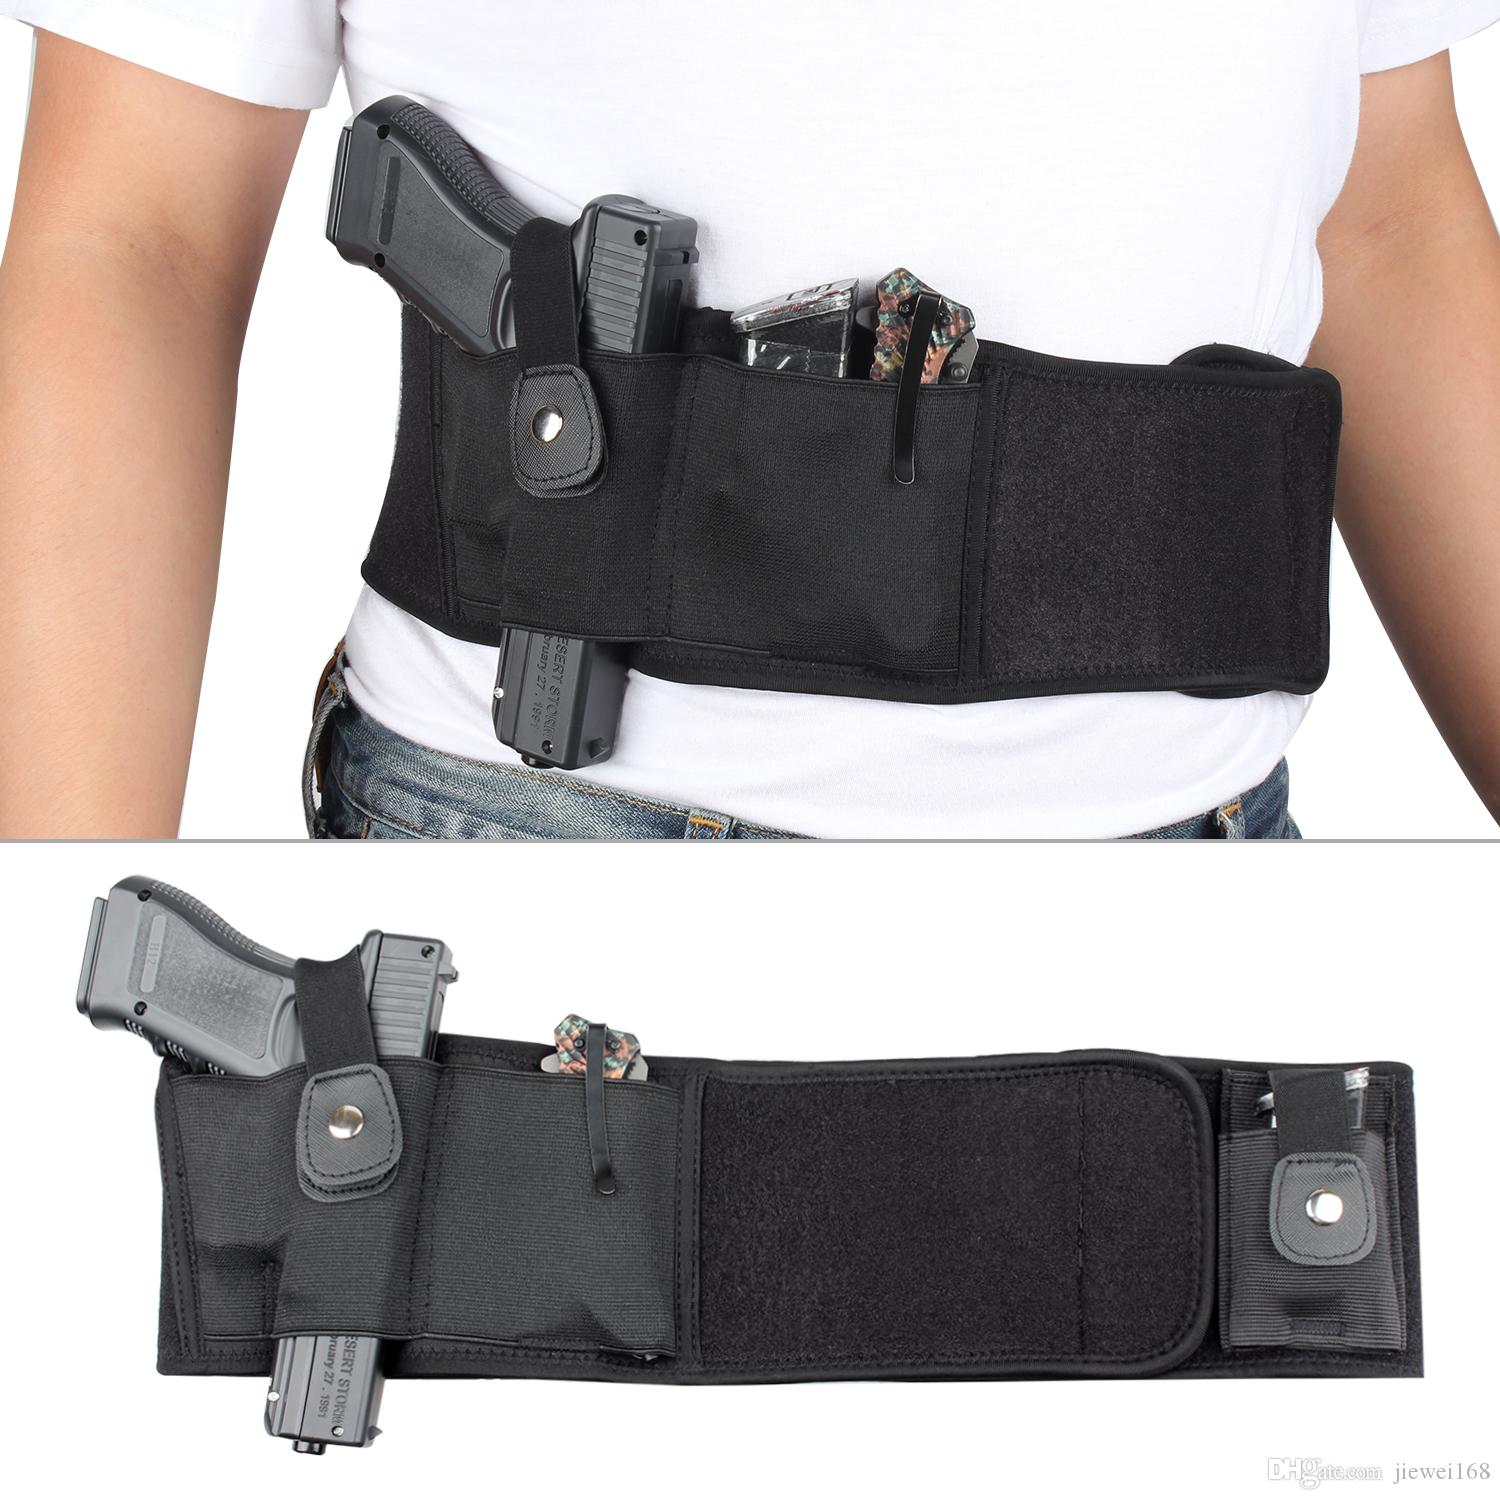 Ultimate Tactical Belly Band Holster para Carry Escondido Preto Fit Mid Tamanho Completo Compacto Revólver Subcompacto Revólver Caça Pistola